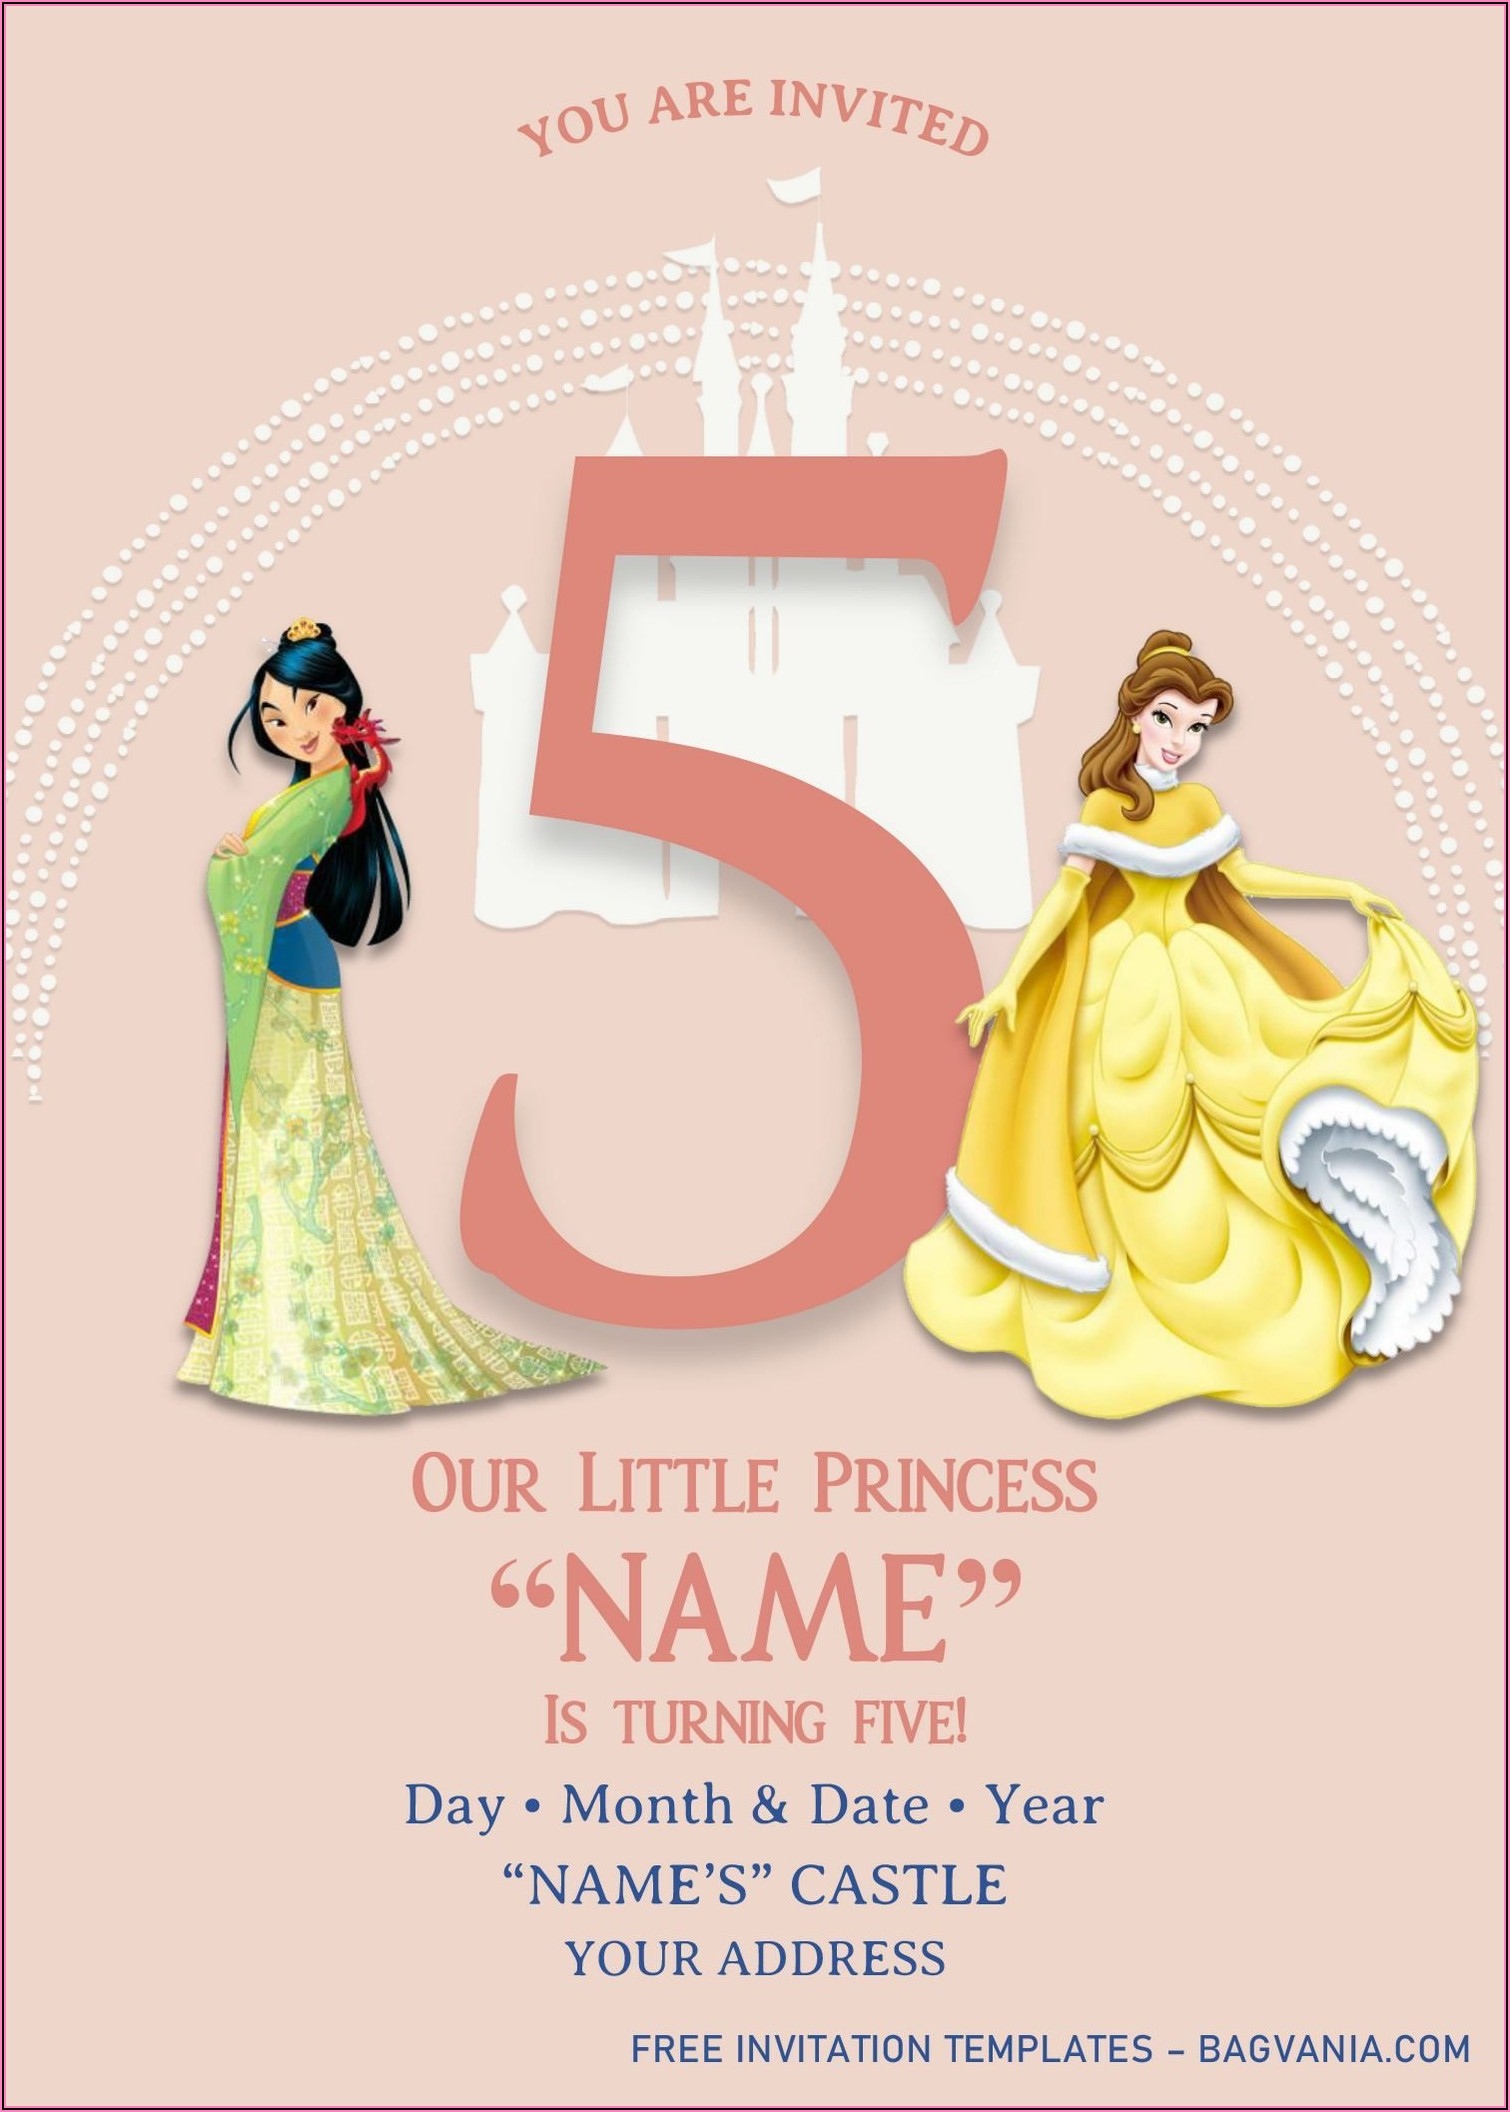 Free Editable Disney Princess Birthday Invitations